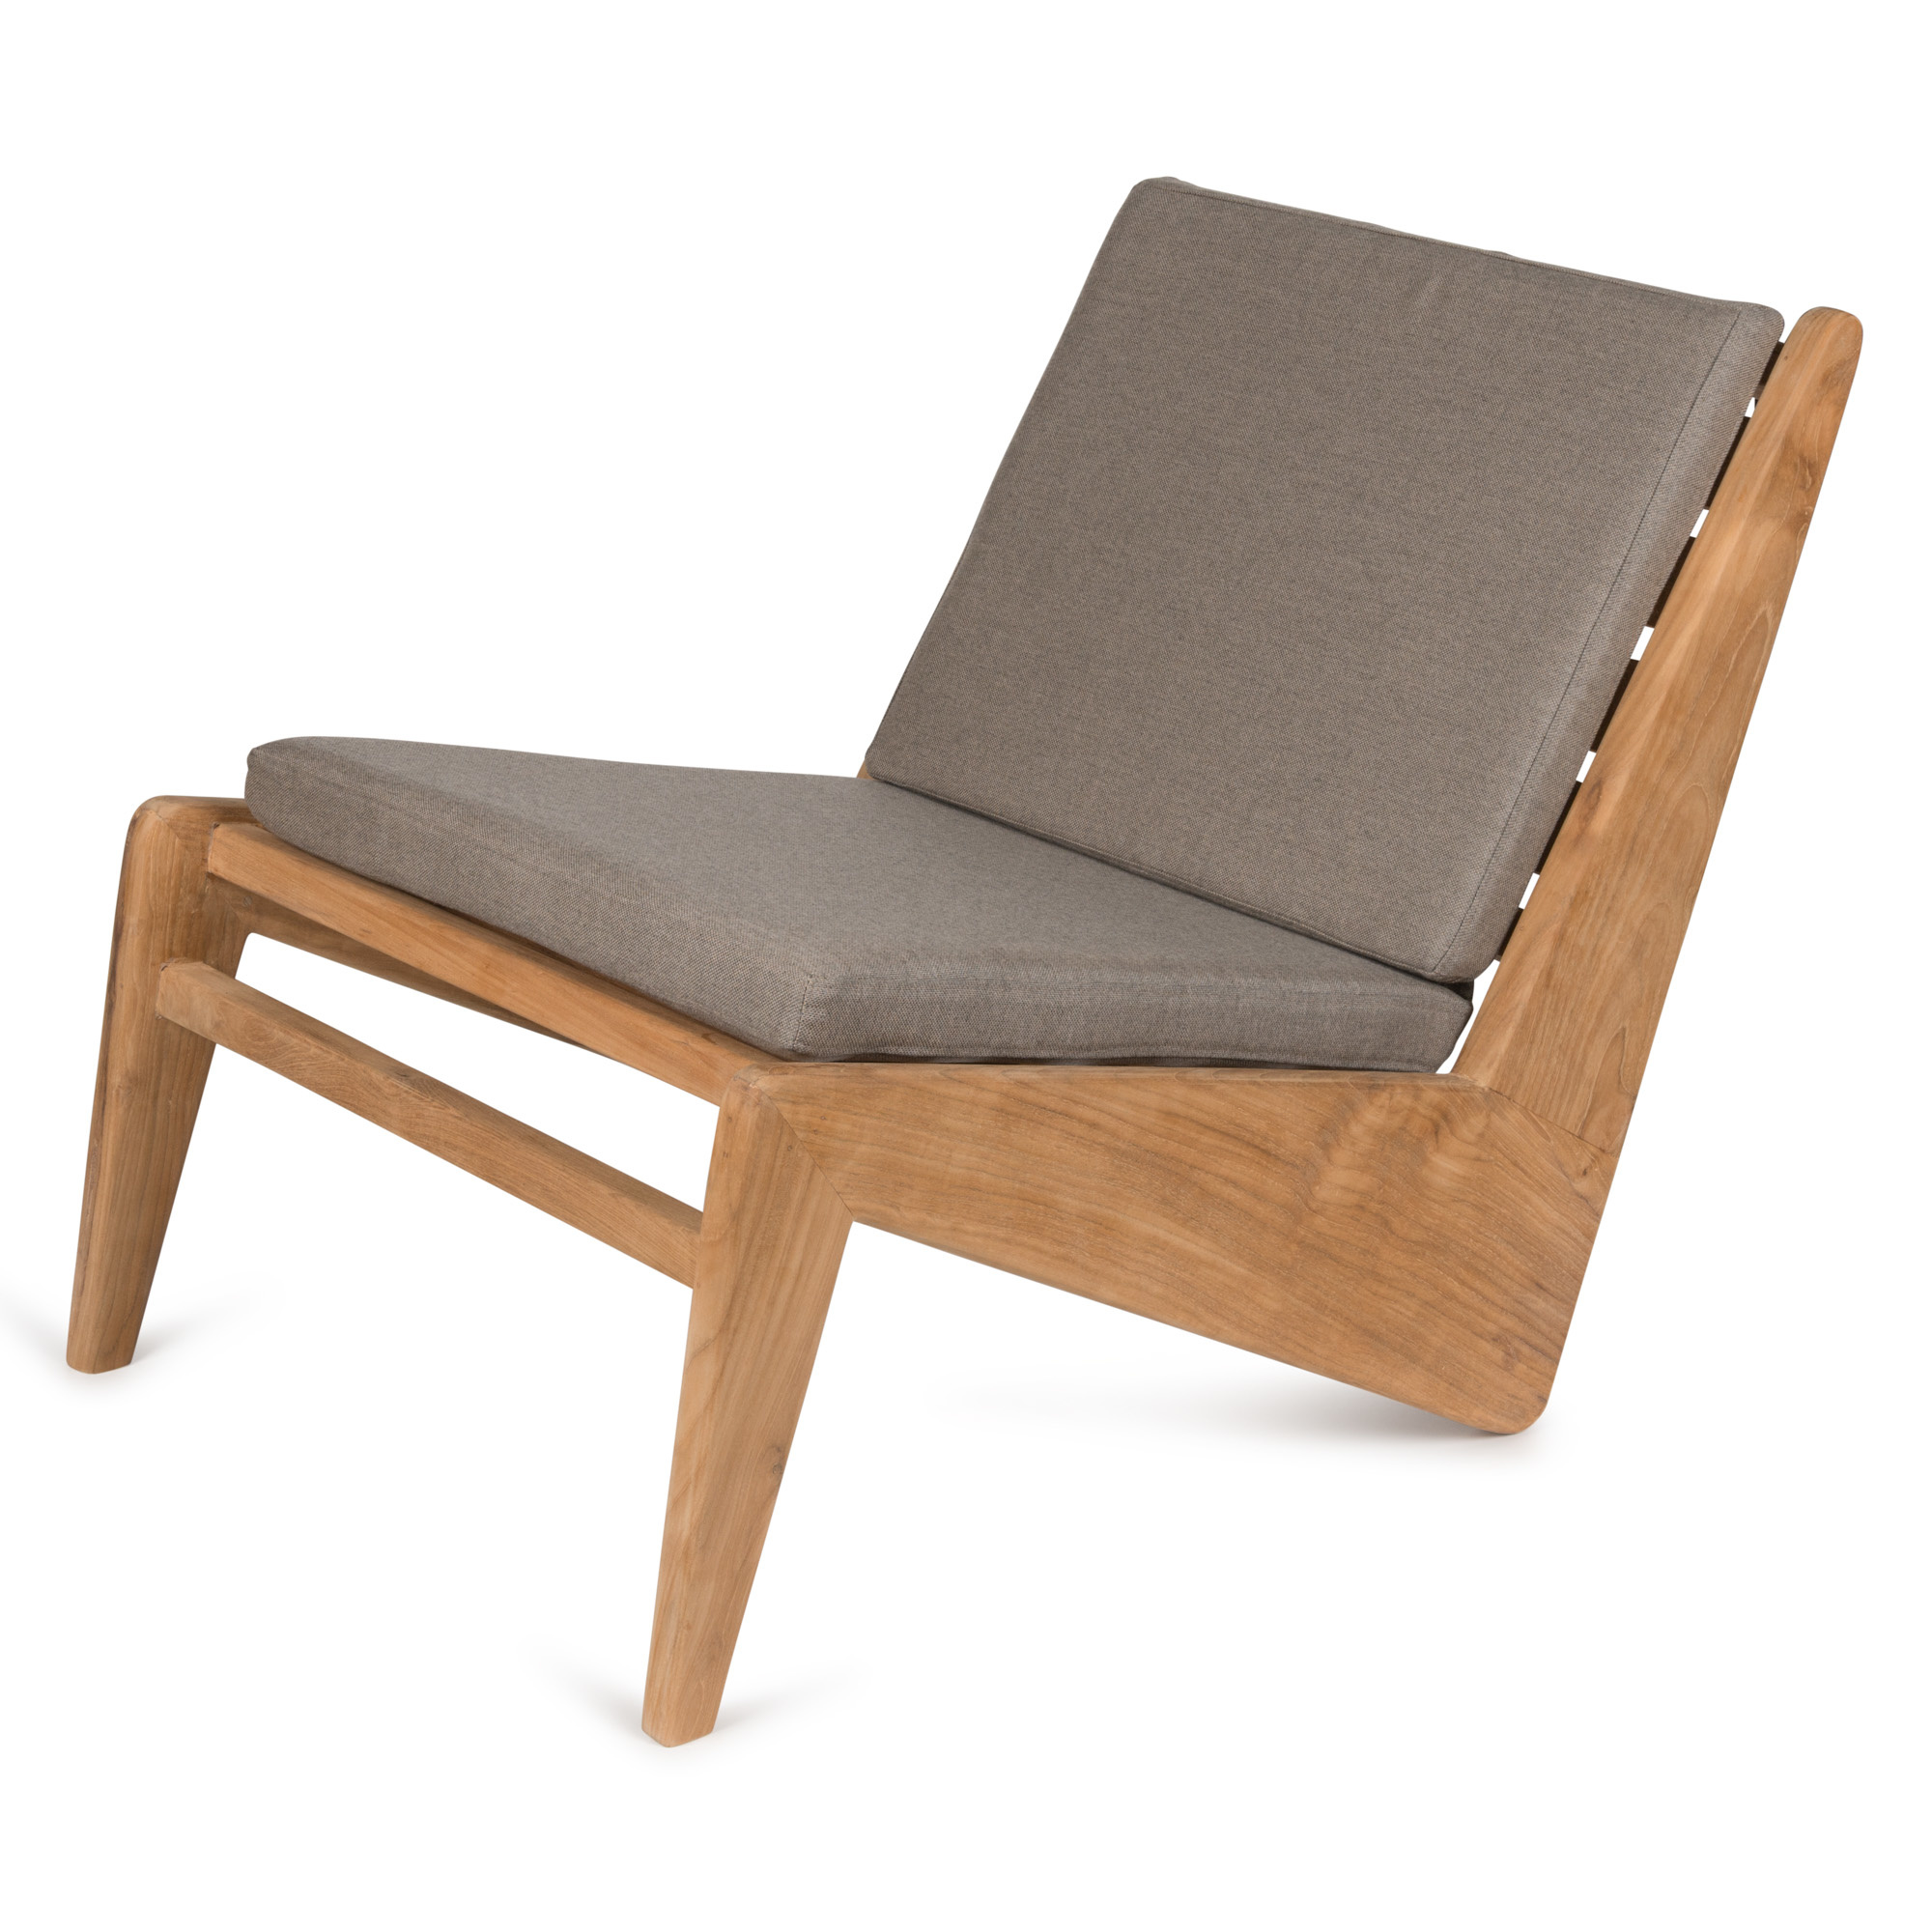 Kangaroo Chair - Teak Outdoor with Cushion-1